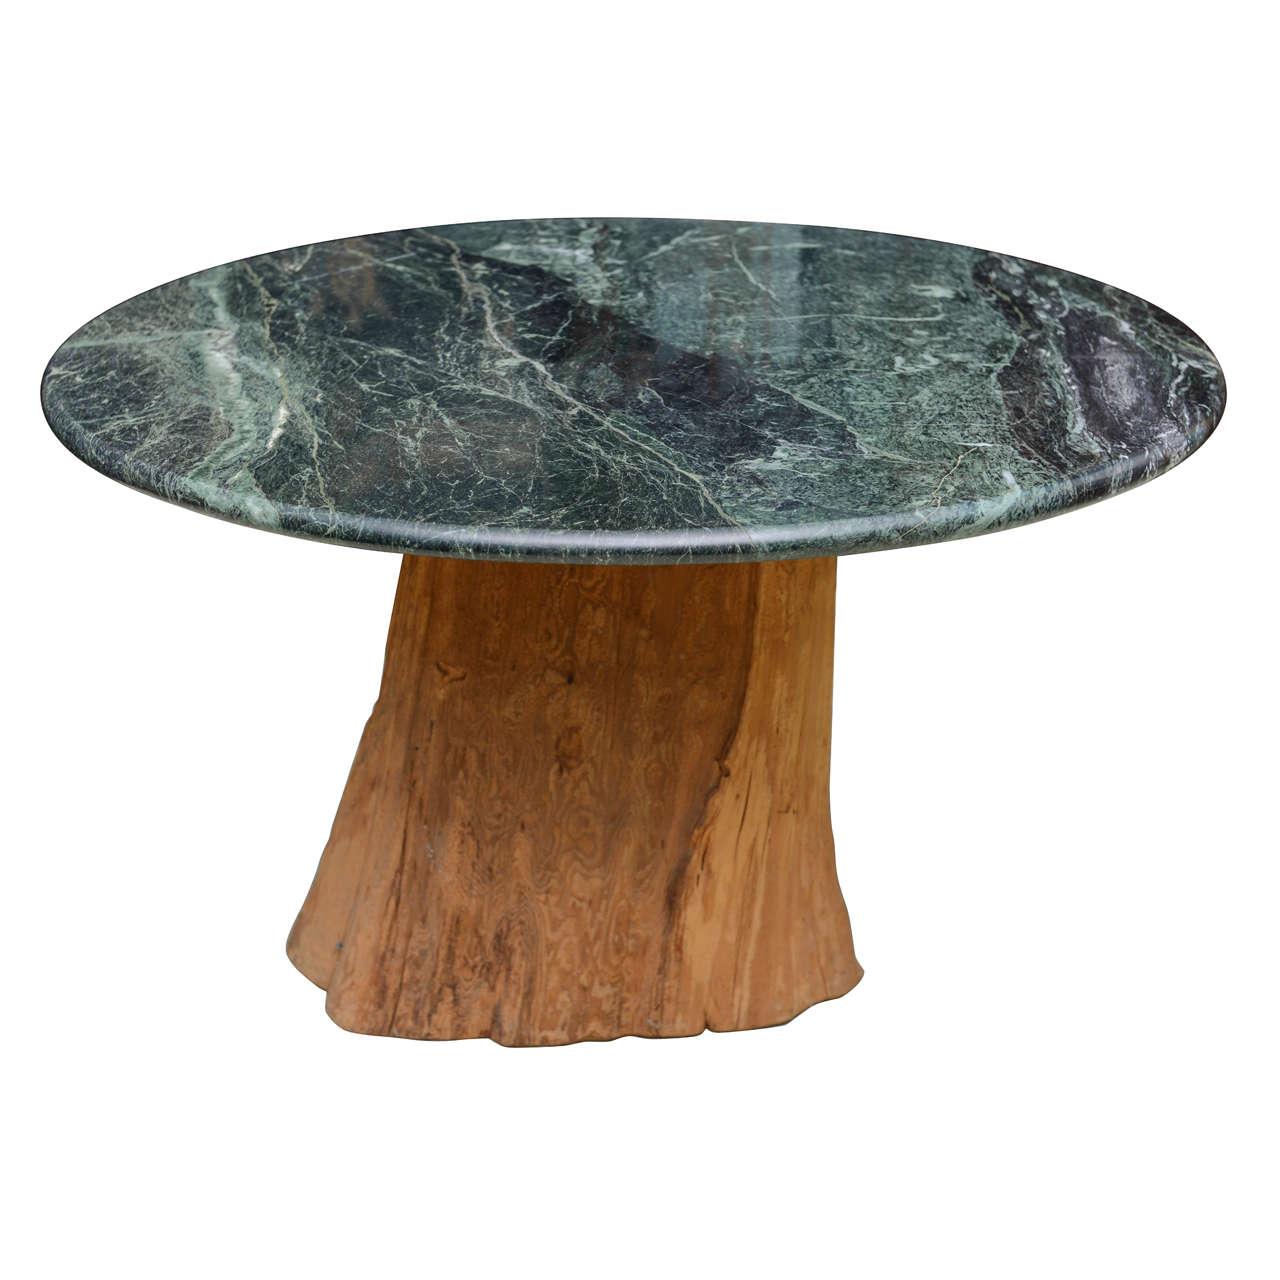 Chic Mid-Century Modern Dining Table, Michael Taylor designed this Classic beauty. The 1970s natural sandblasted petrified wood tree trunk table from the south west desert exemplifies an early entry into organic and environmental design.  Vintage